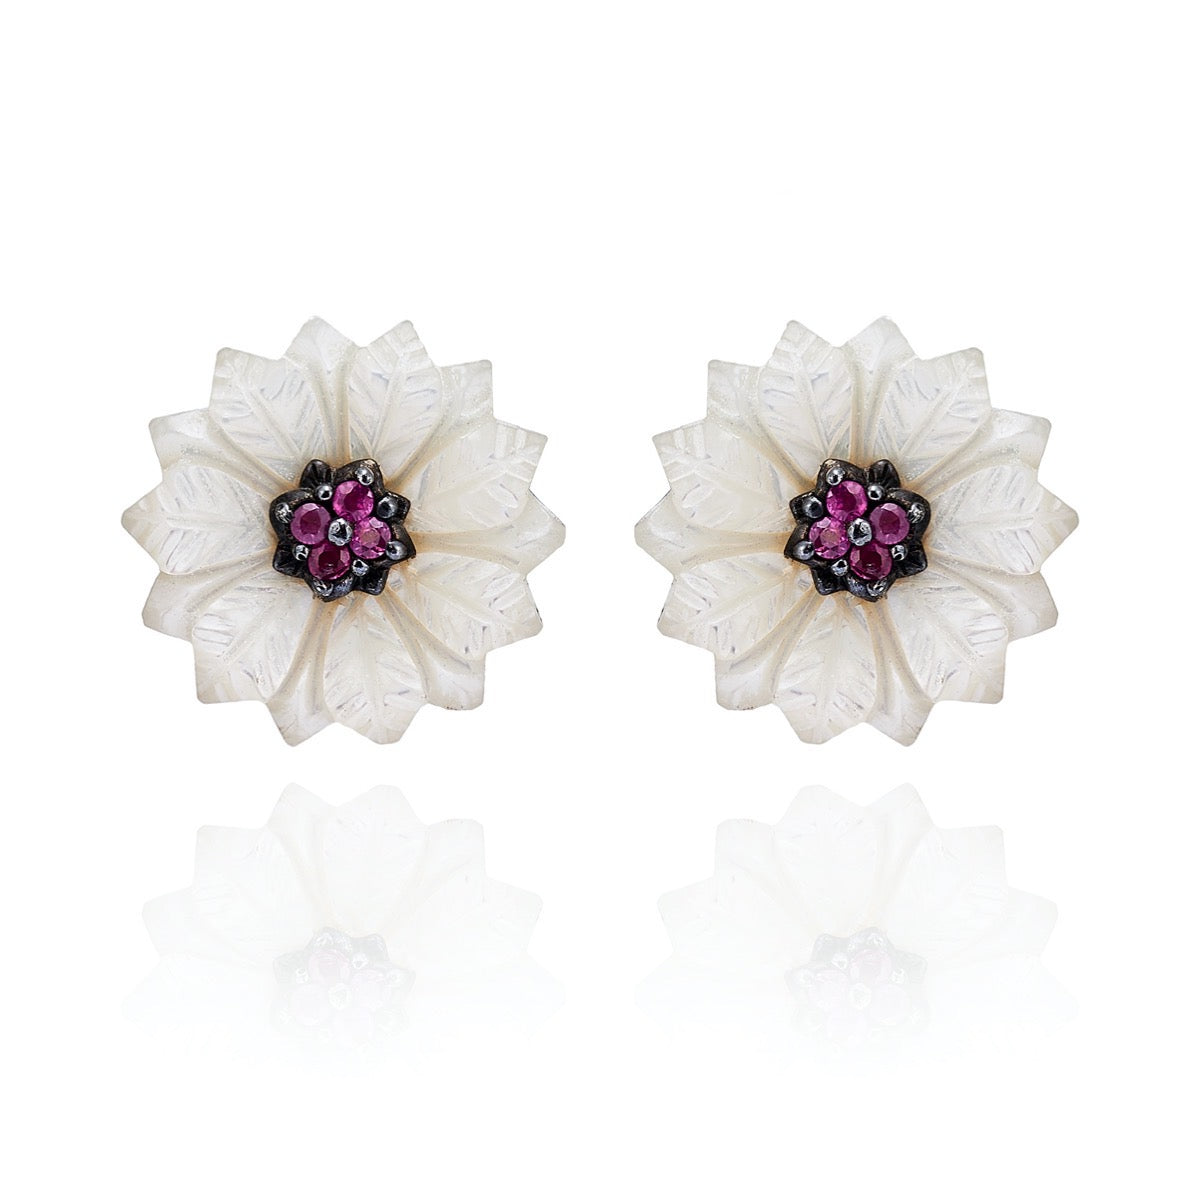 Hand Carved Mother of Pearl Flower Stud Earring